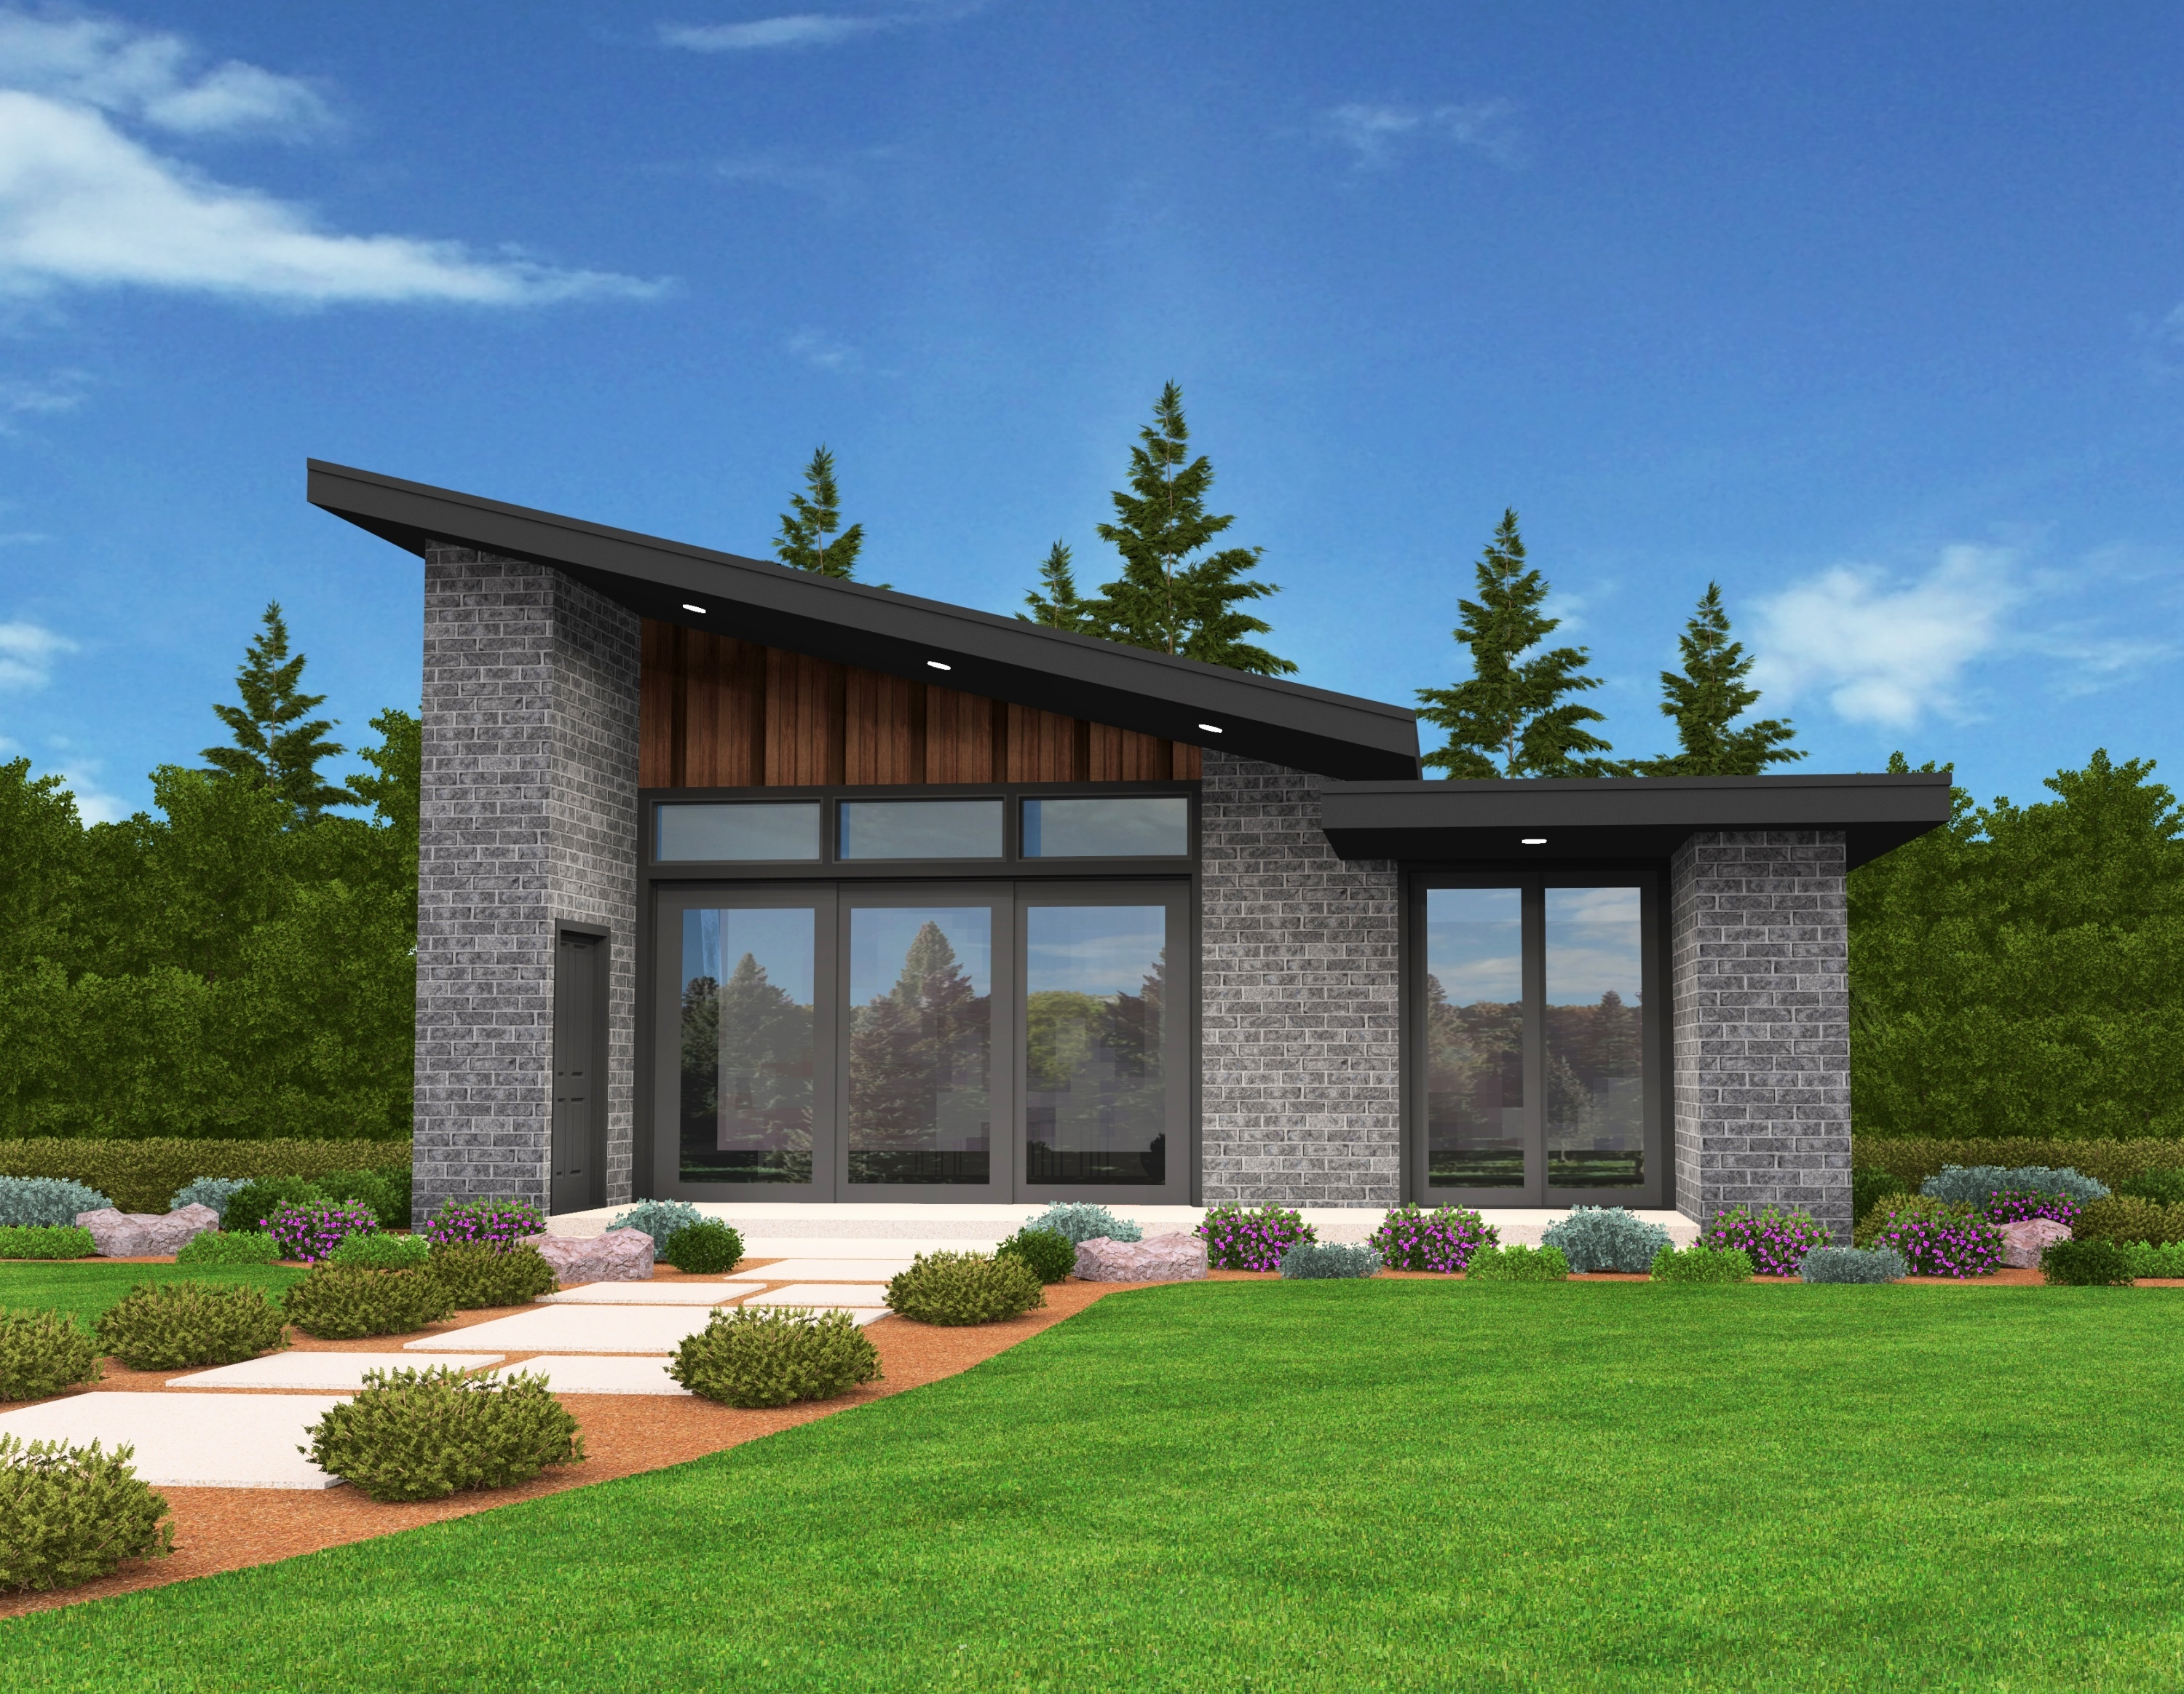 house plans with masonry, house plans with foundation, house plans with brick, house plans with dormer, house plans with siding, house plans with parapet, house plans with deck, house plans with slab on grade, house plans with hvac, house plans with cupola, house plans with shingles, house plans build your own, house detached garage with apartment, small house with hip roof, house plans with stucco, modern house with shed roof, house plans modern shed, on rambler house plans with shed roof